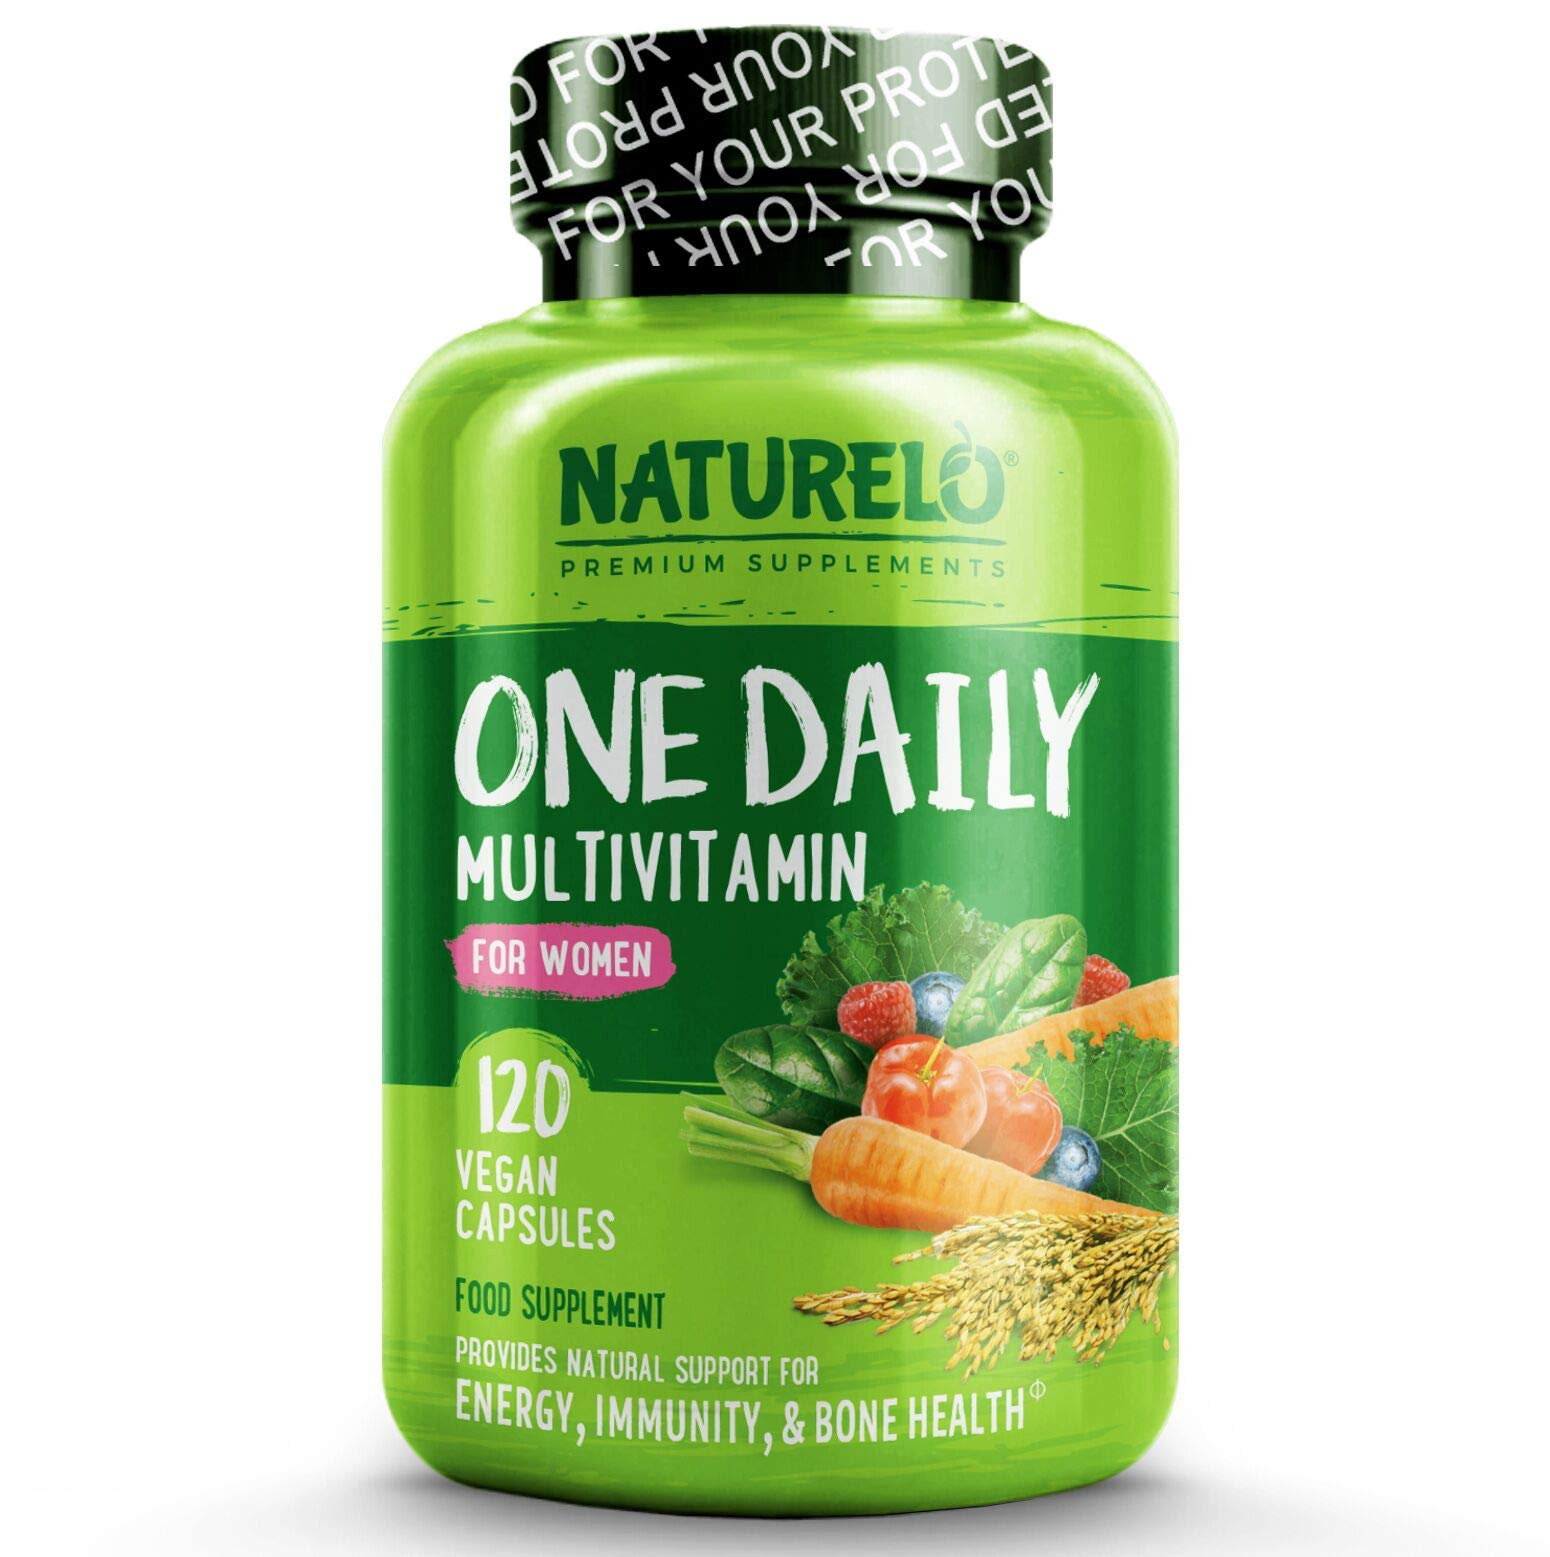 NATURELO One Daily Multivitamin for Women - with Natural Food-Based Vitamins, Fruit & Vegetable Extracts - Best for Maintaining Essential Nutrients - Non-GMO - 120 Vegan Capsules | 4 Month Supply